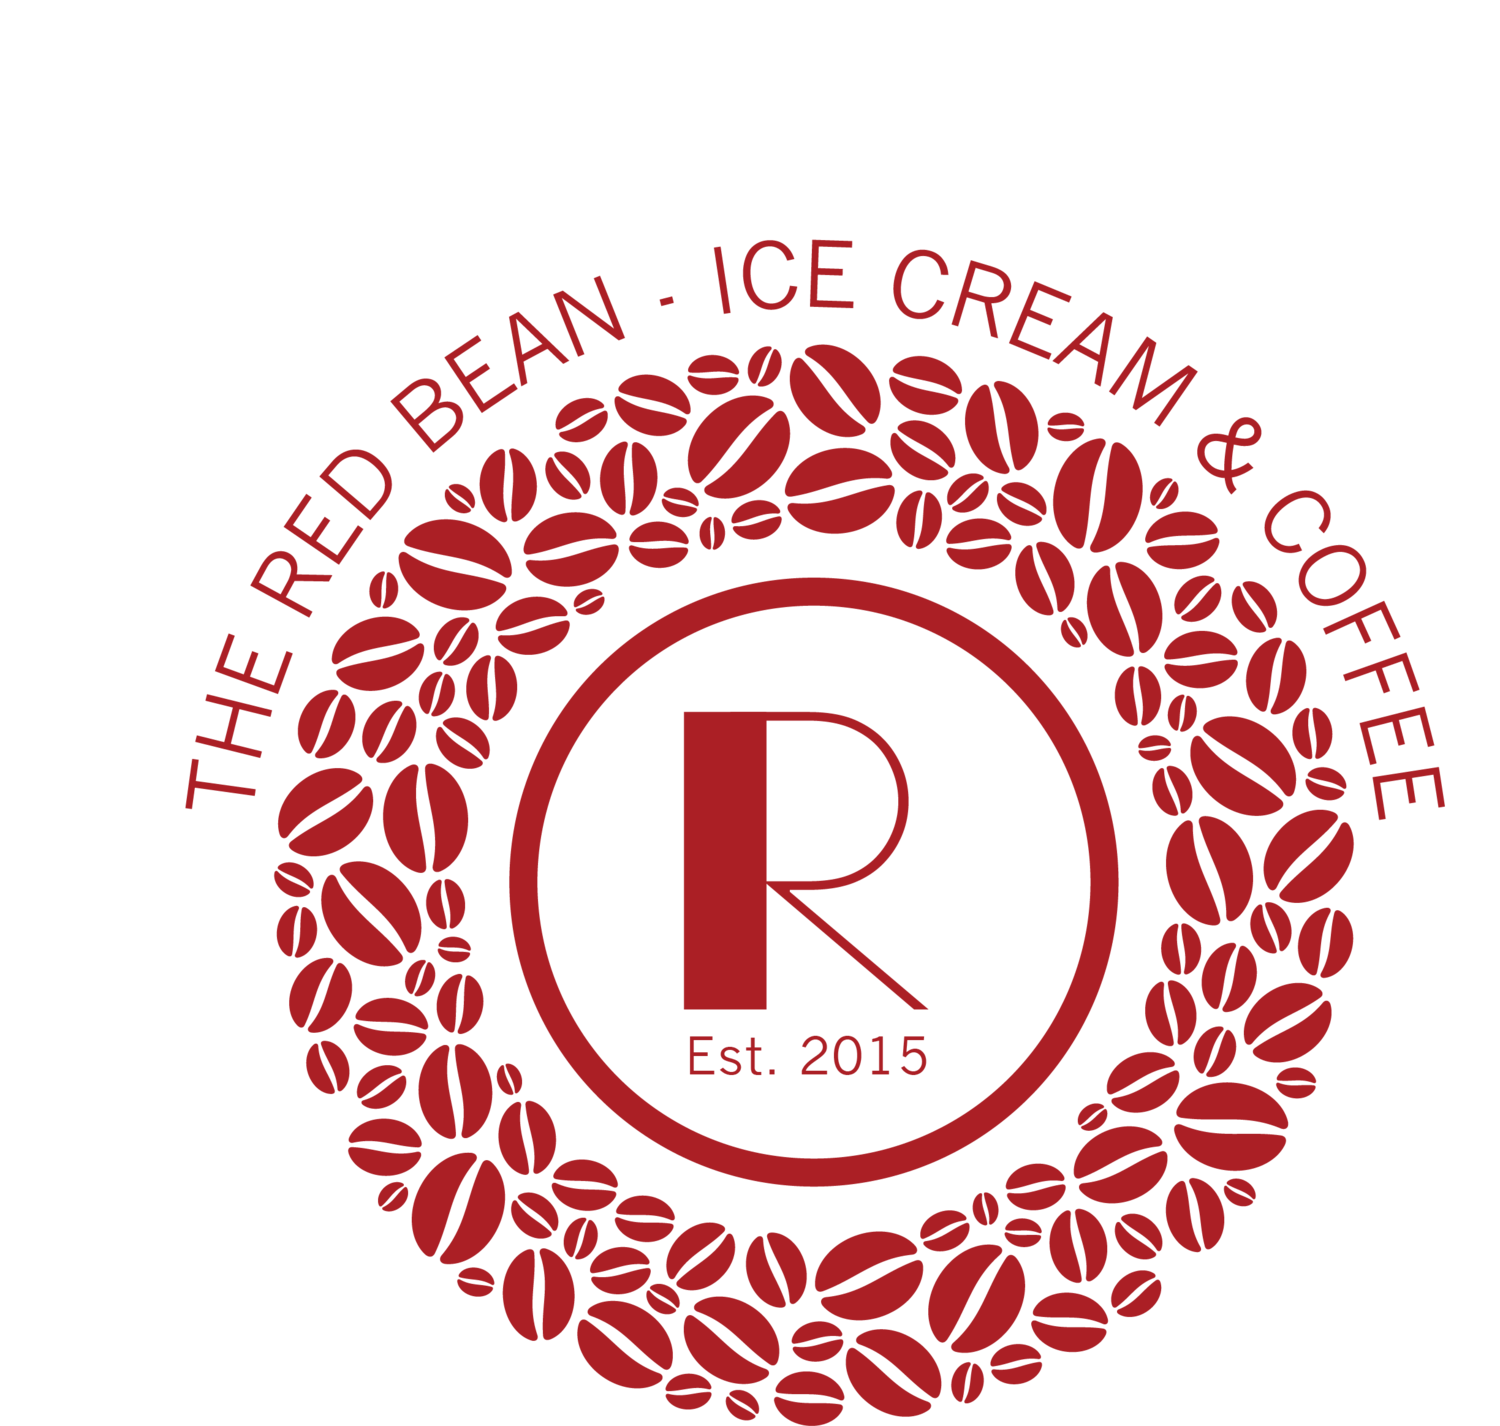 The Red Bean